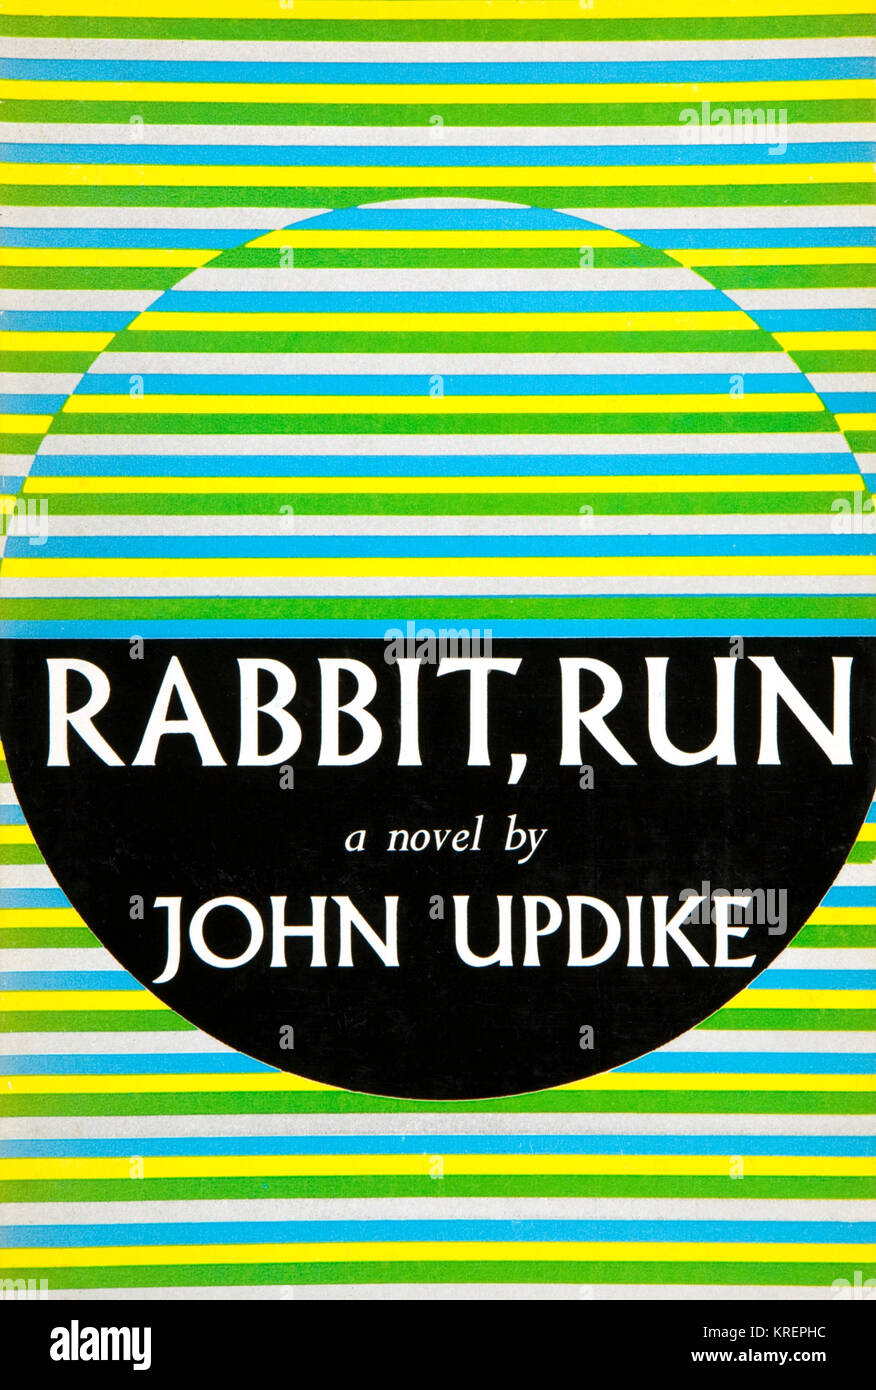 escaping the constraints of life in rabbit run by john updike Rabbit, run is a 1960 novel by john updikethe novel depicts three months in the life of a  attempts to escape the constraints of his life sun, 19 aug 2018.